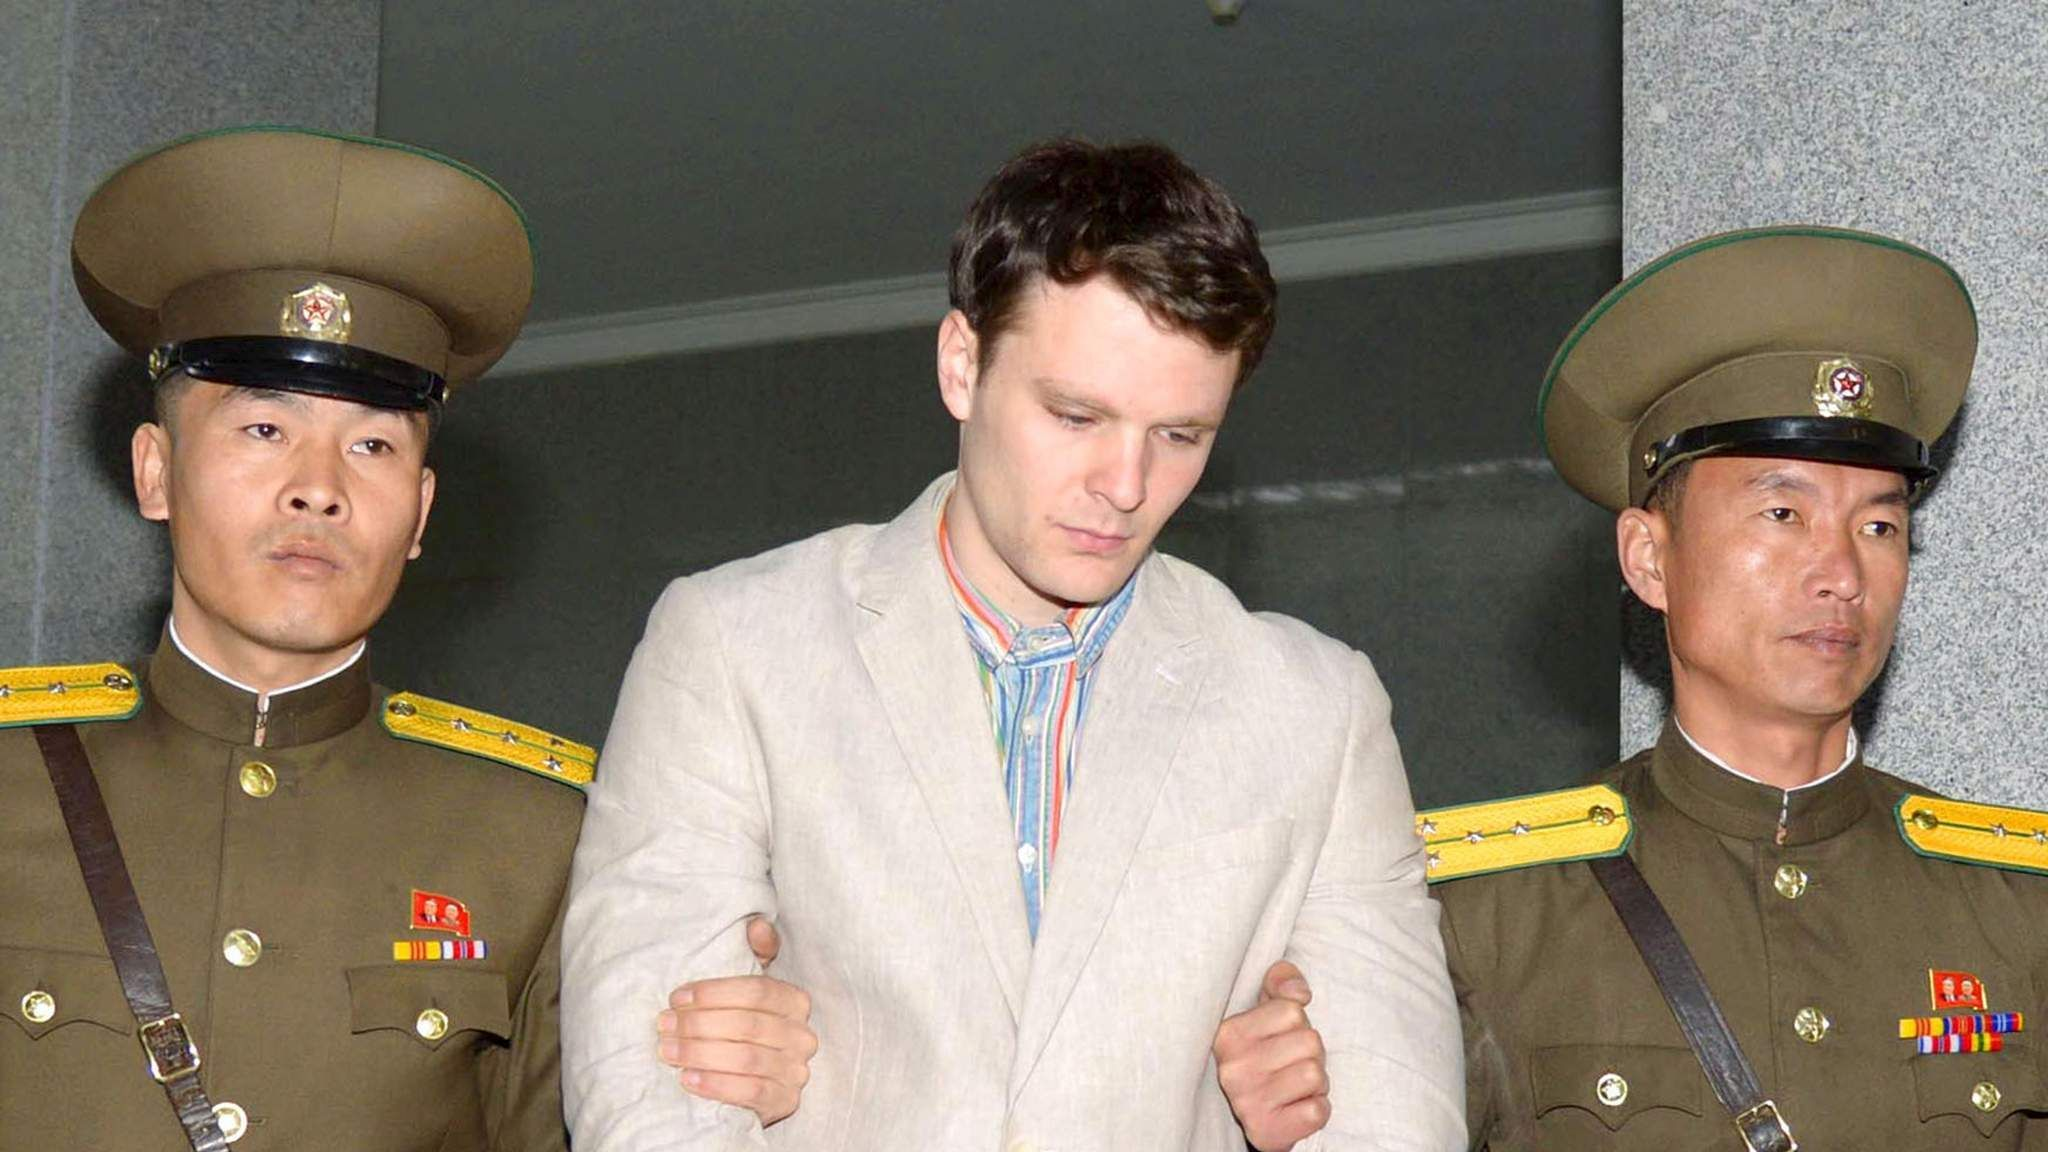 Otto Warmbier the former University of Virginia student who returned home to the US last week after spending more than a year imprisoned in North Korea